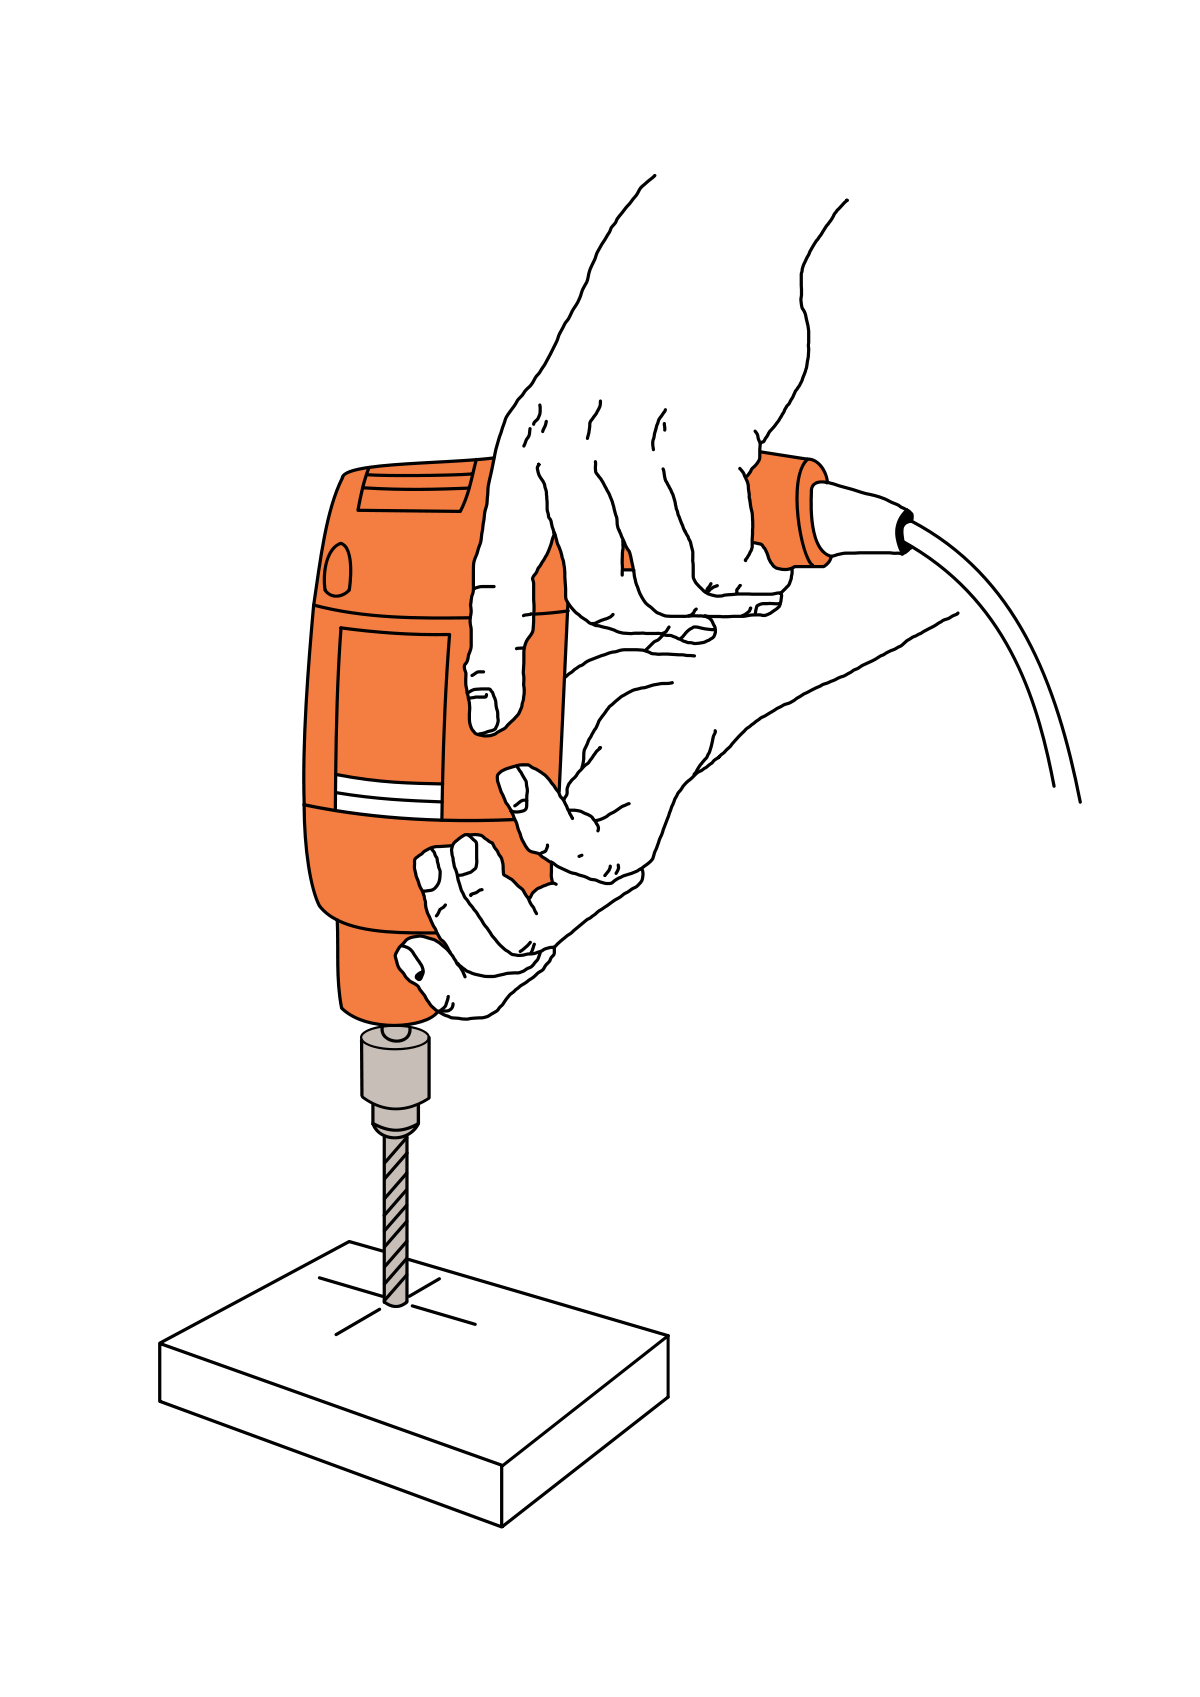 Anatomy of a hand. Drill clipart electrical tool